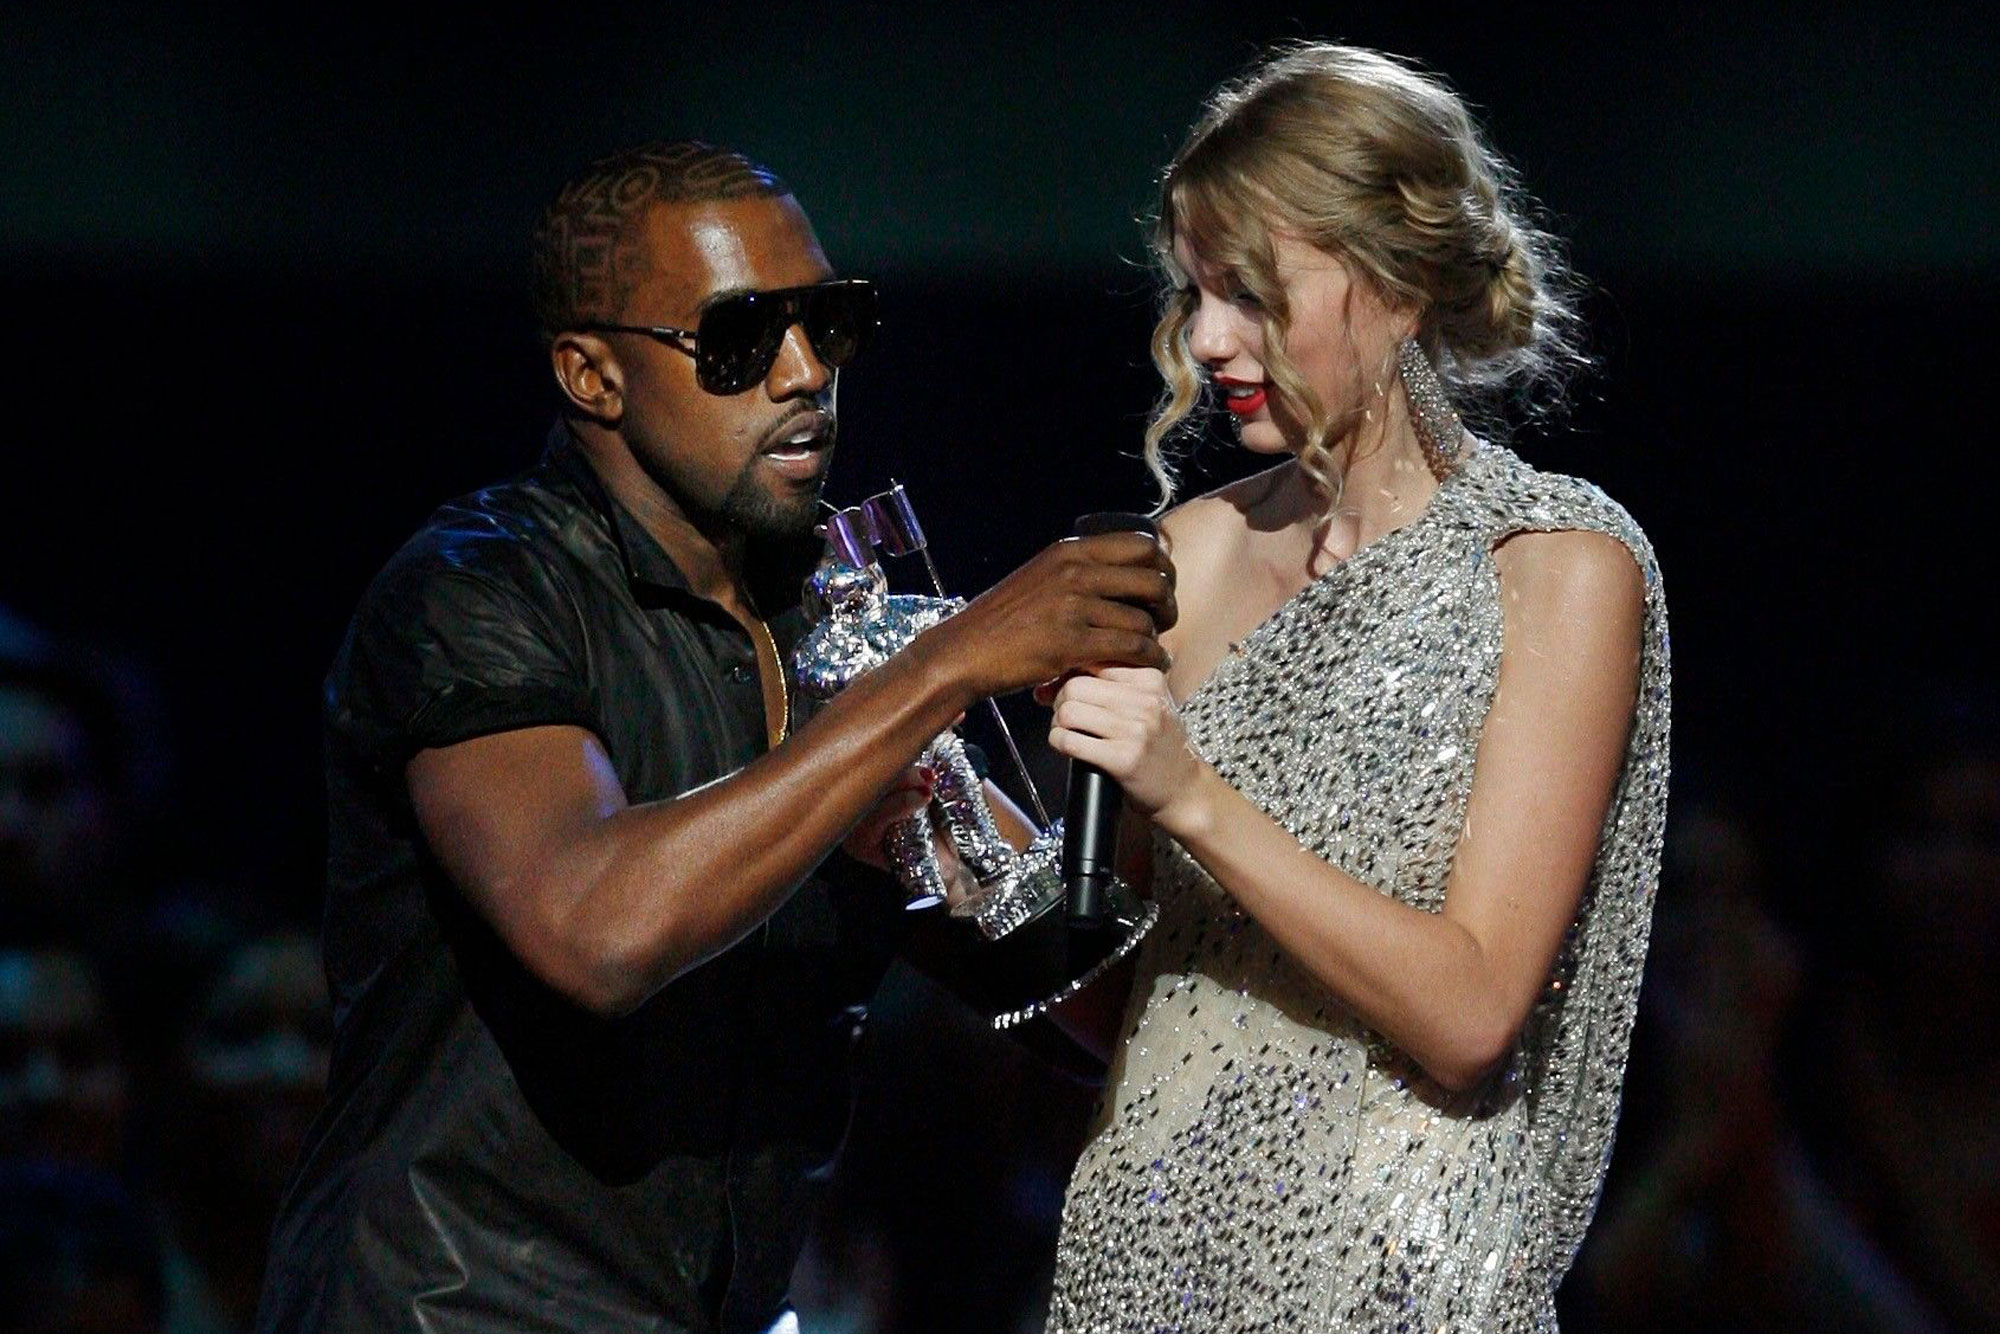 Kanye interrupting Tylor Swift while she gives her acceptance speech at MTV VMA in 2009